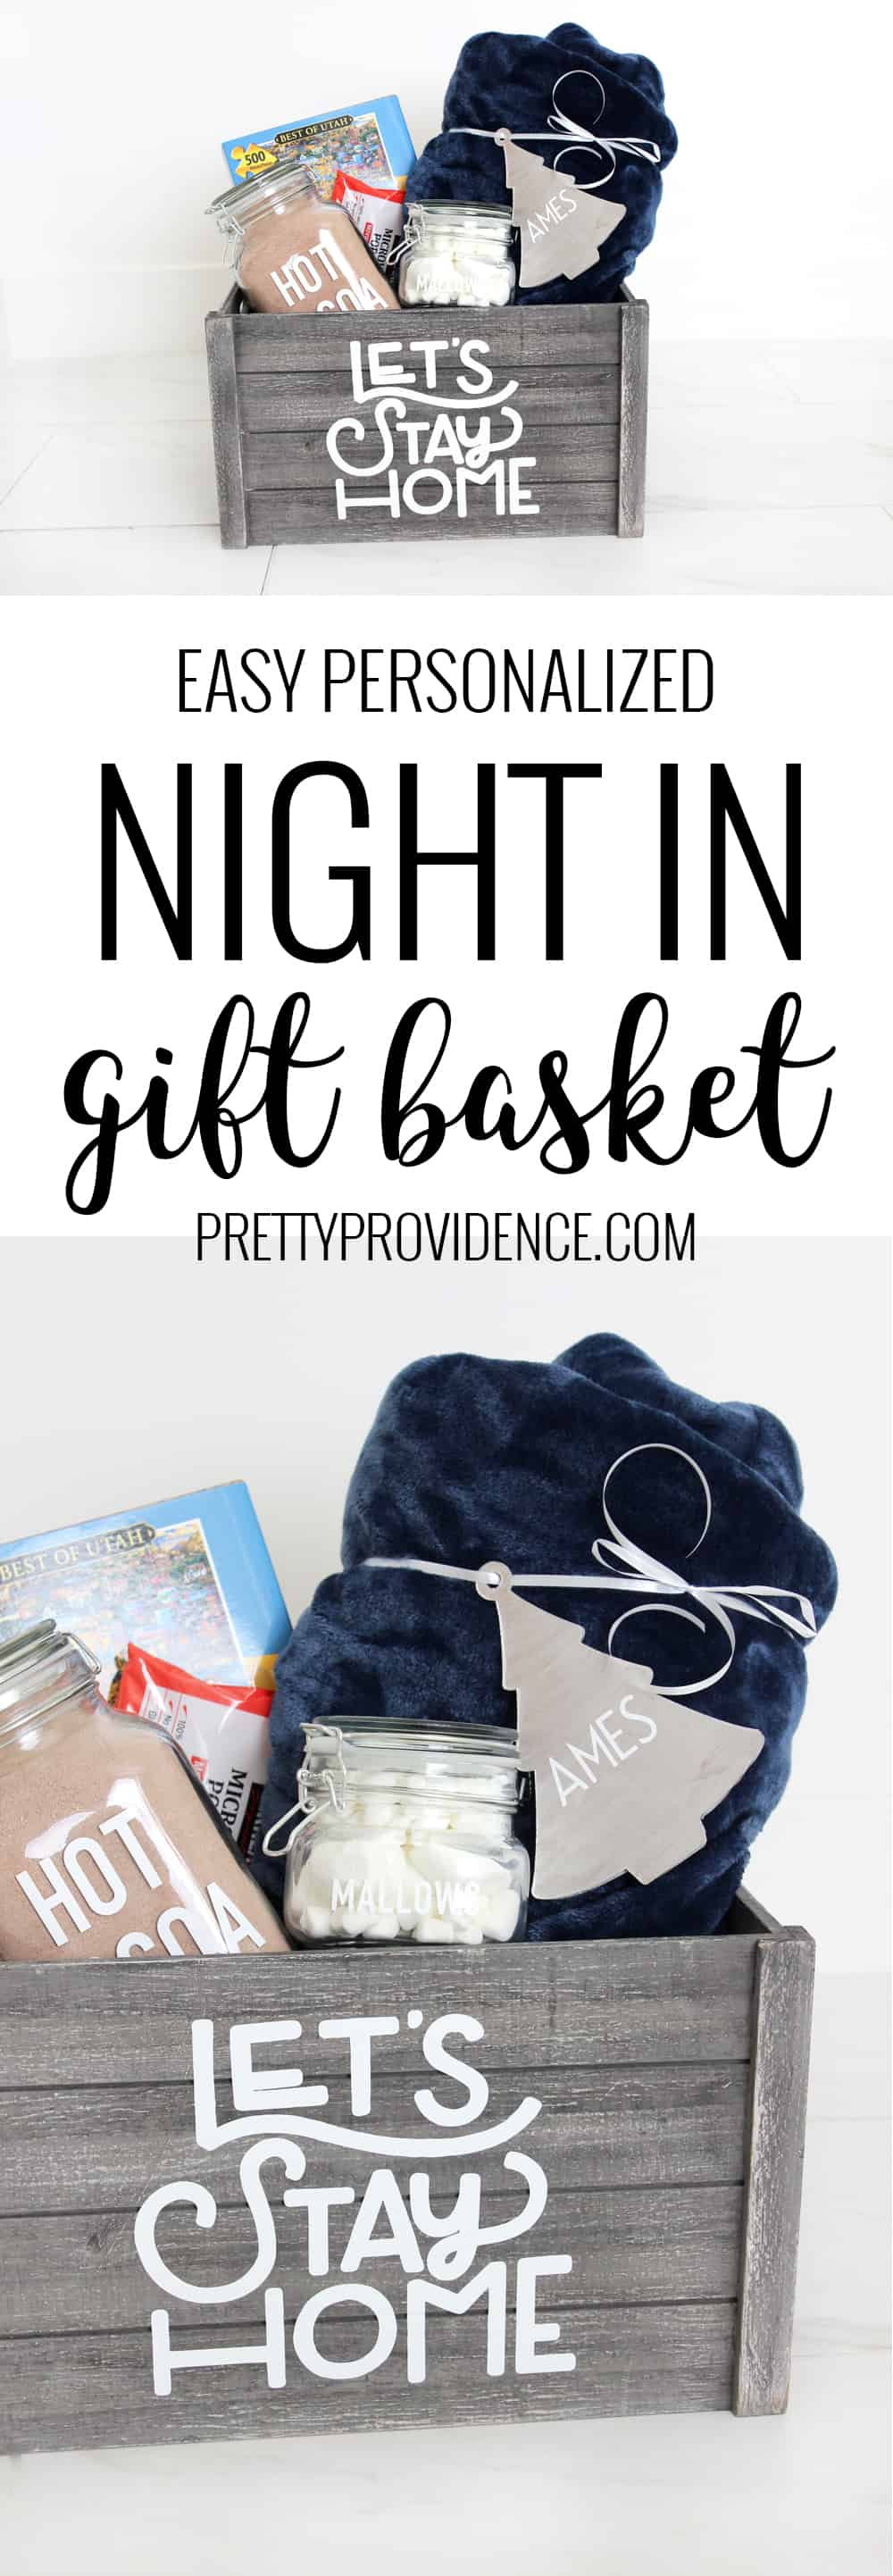 "Loving this easy personalized ""night in"" gift basket idea! Easy to put together but can be used again and again! Perfect gift for close friends."